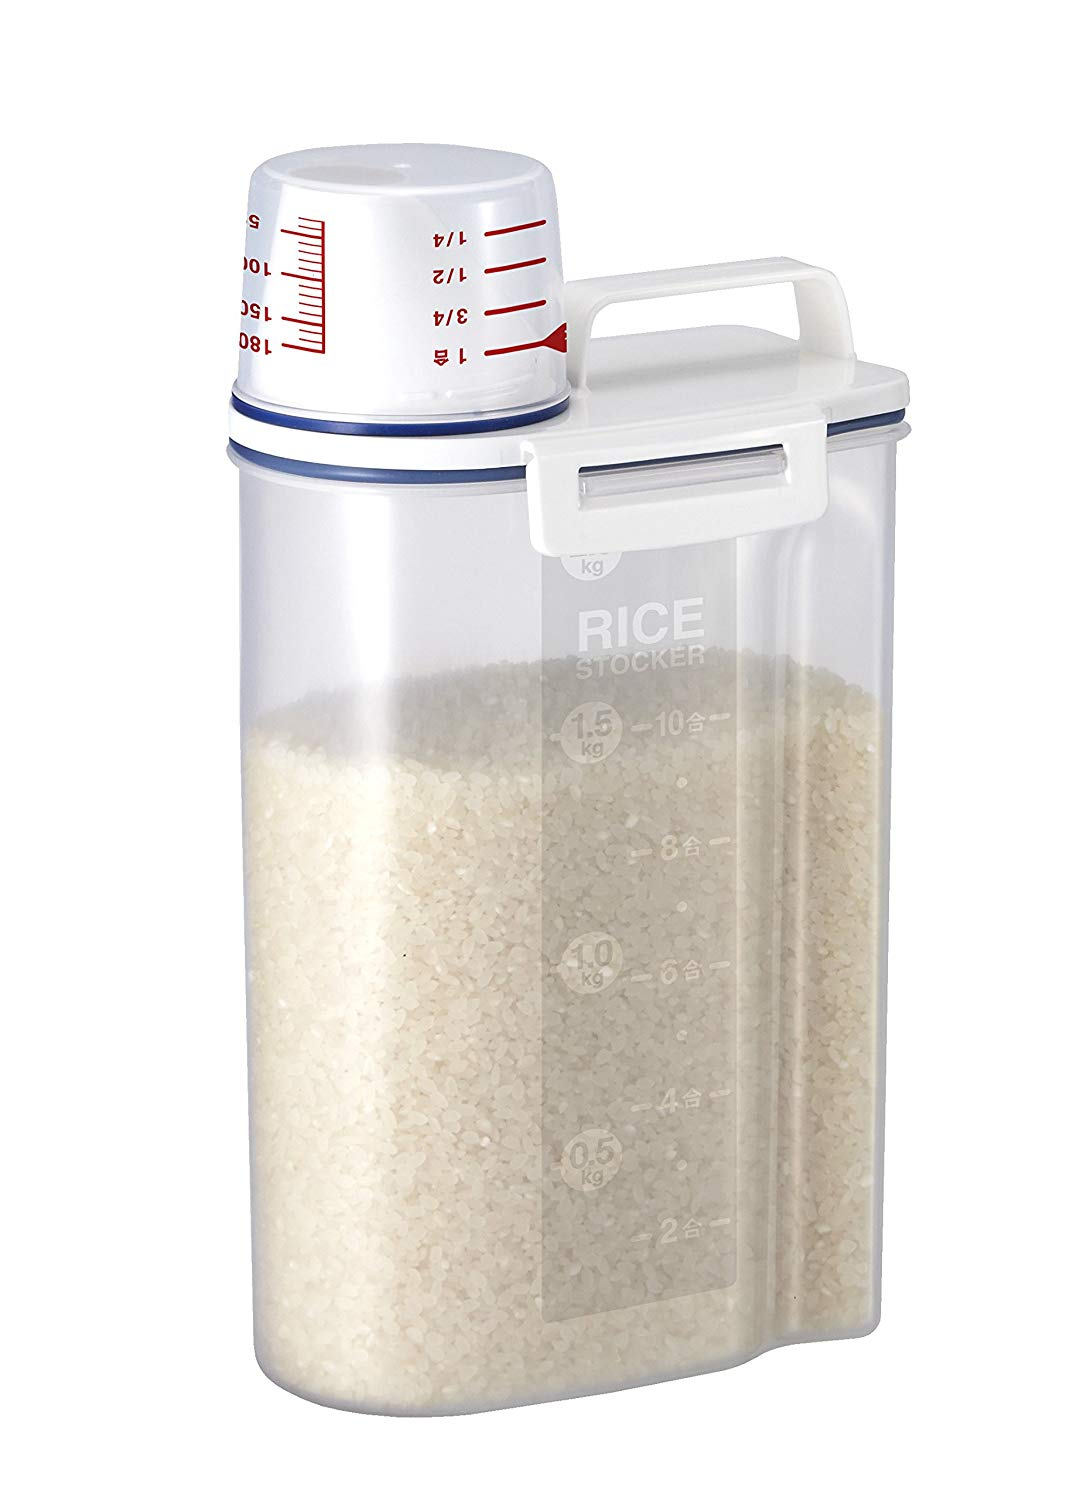 Rice Storage Bin with Pour Spout